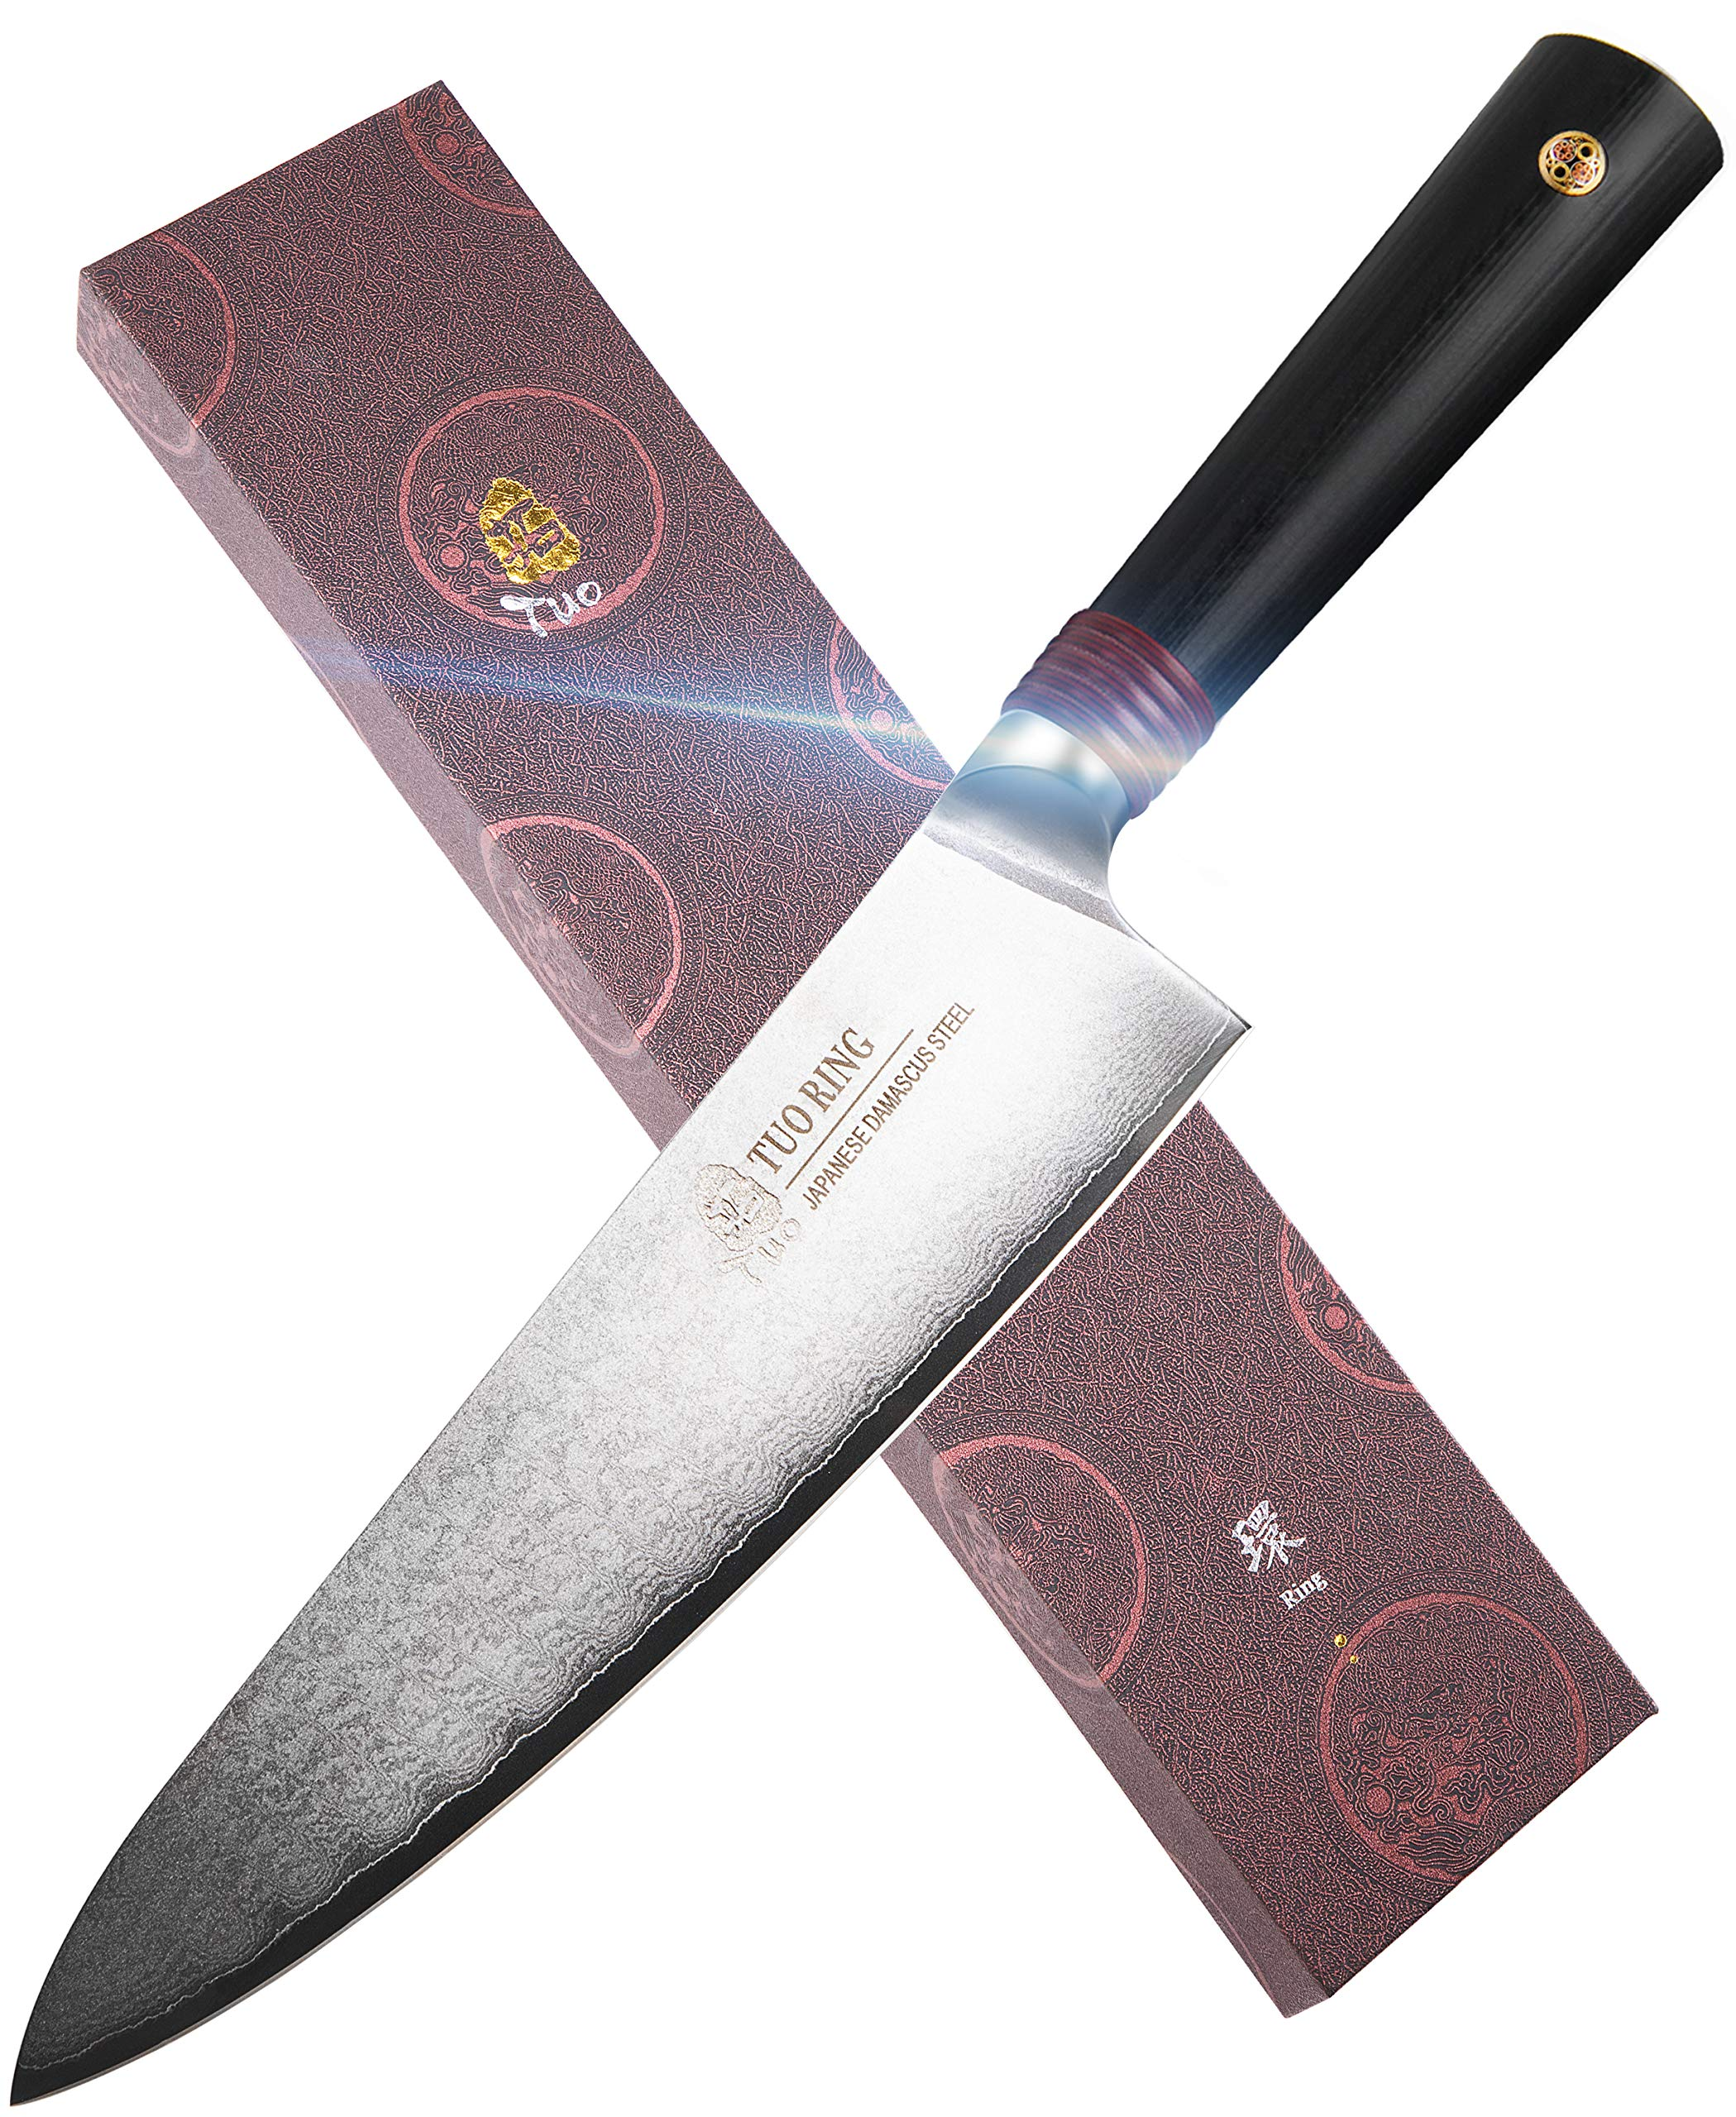 """TUO Chef's Knife - Kitchen Chef Knives - Japanese AUS-10 Damascus Steel - Dishwasher Safe G10 Handle - Gift Case Included - RING-DM Series TC0301DM - 8"""""""